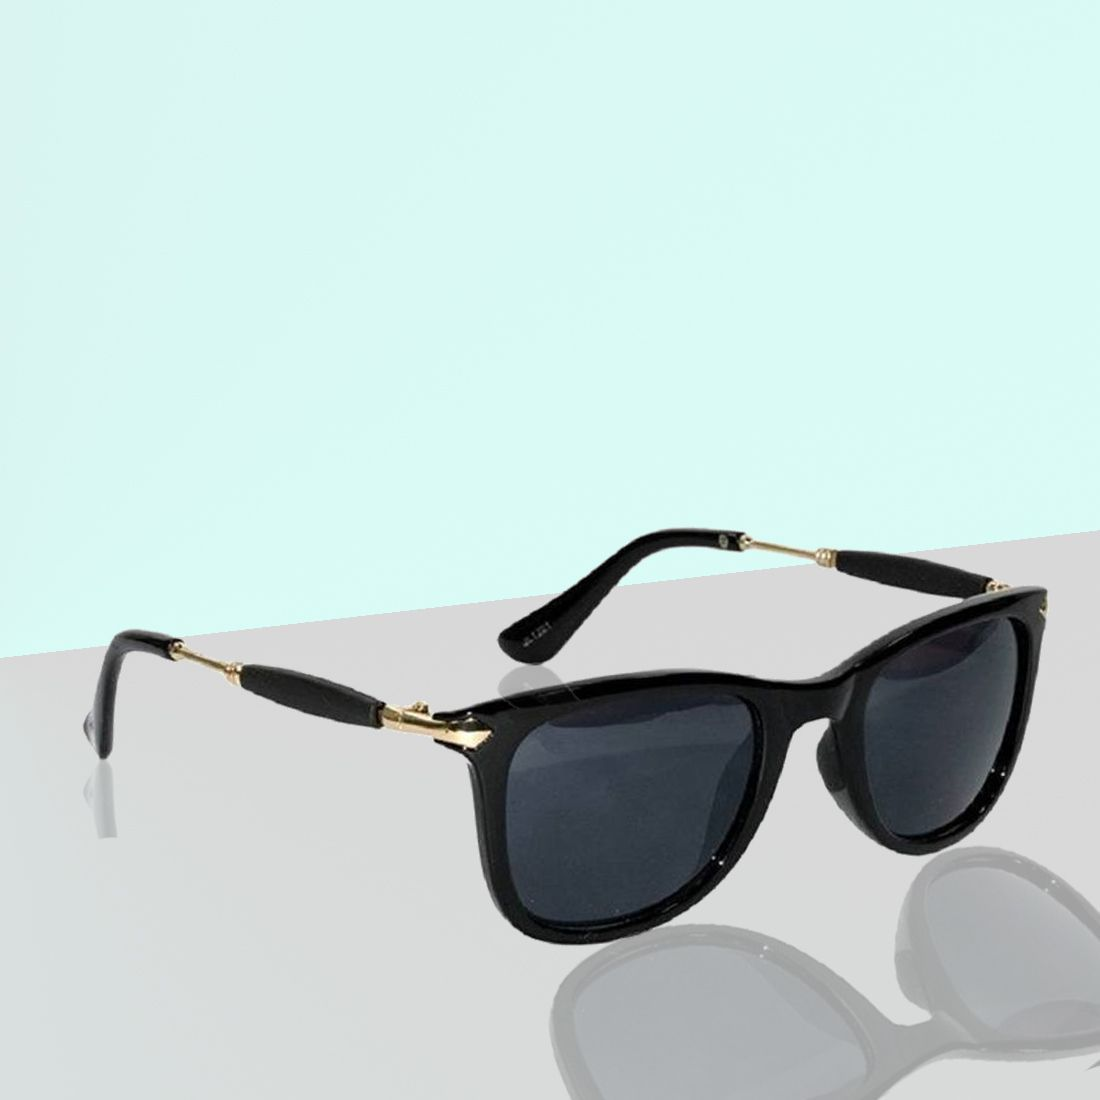 13bae47f59f Ray Ban Sunglasses Black Wayfarer Sunglasses ( 2148 ) - Buy Ray Ban  Sunglasses Black Wayfarer Sunglasses ( 2148 ) Online at Low Price - Snapdeal